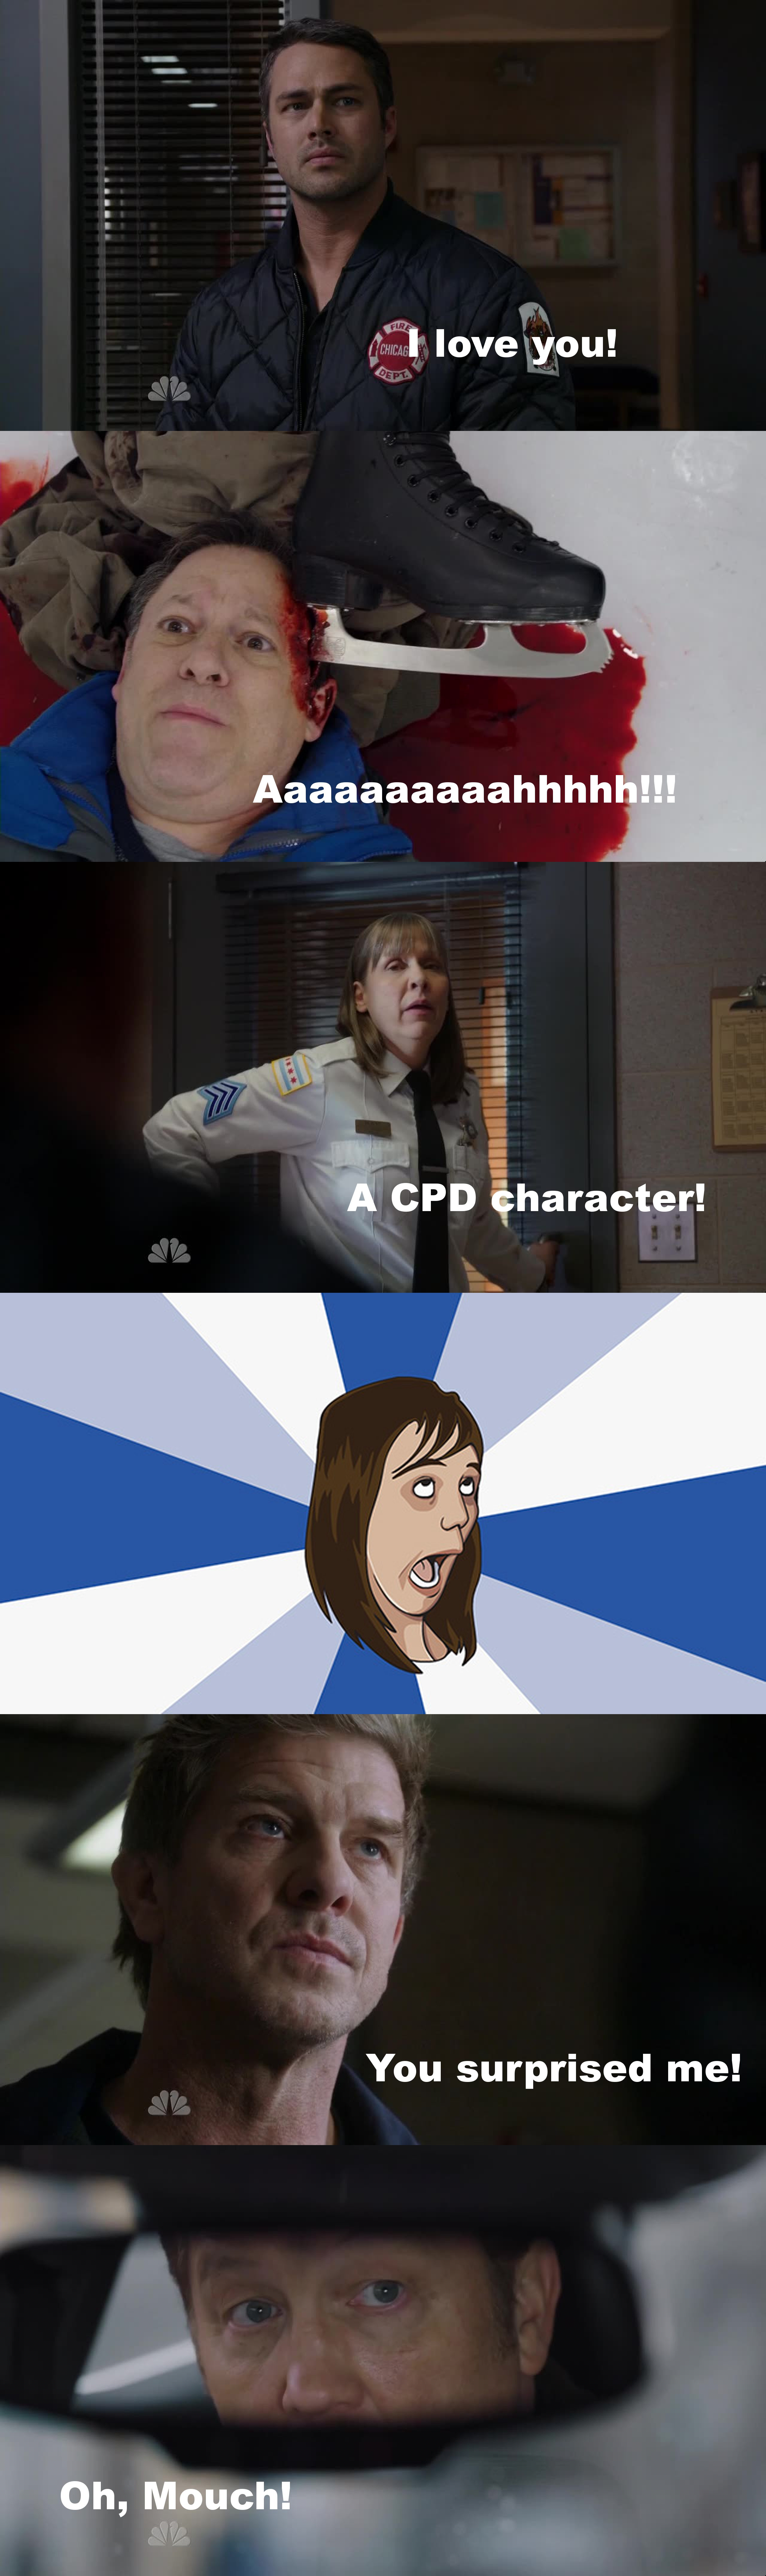 W O W I was so depressed.. no Chicago PD this week! And I hoped so bad some of them will come to 51 (I know I have a problem with this two show!) and then I had this great episode!  So much emotions! Can't wait for next week